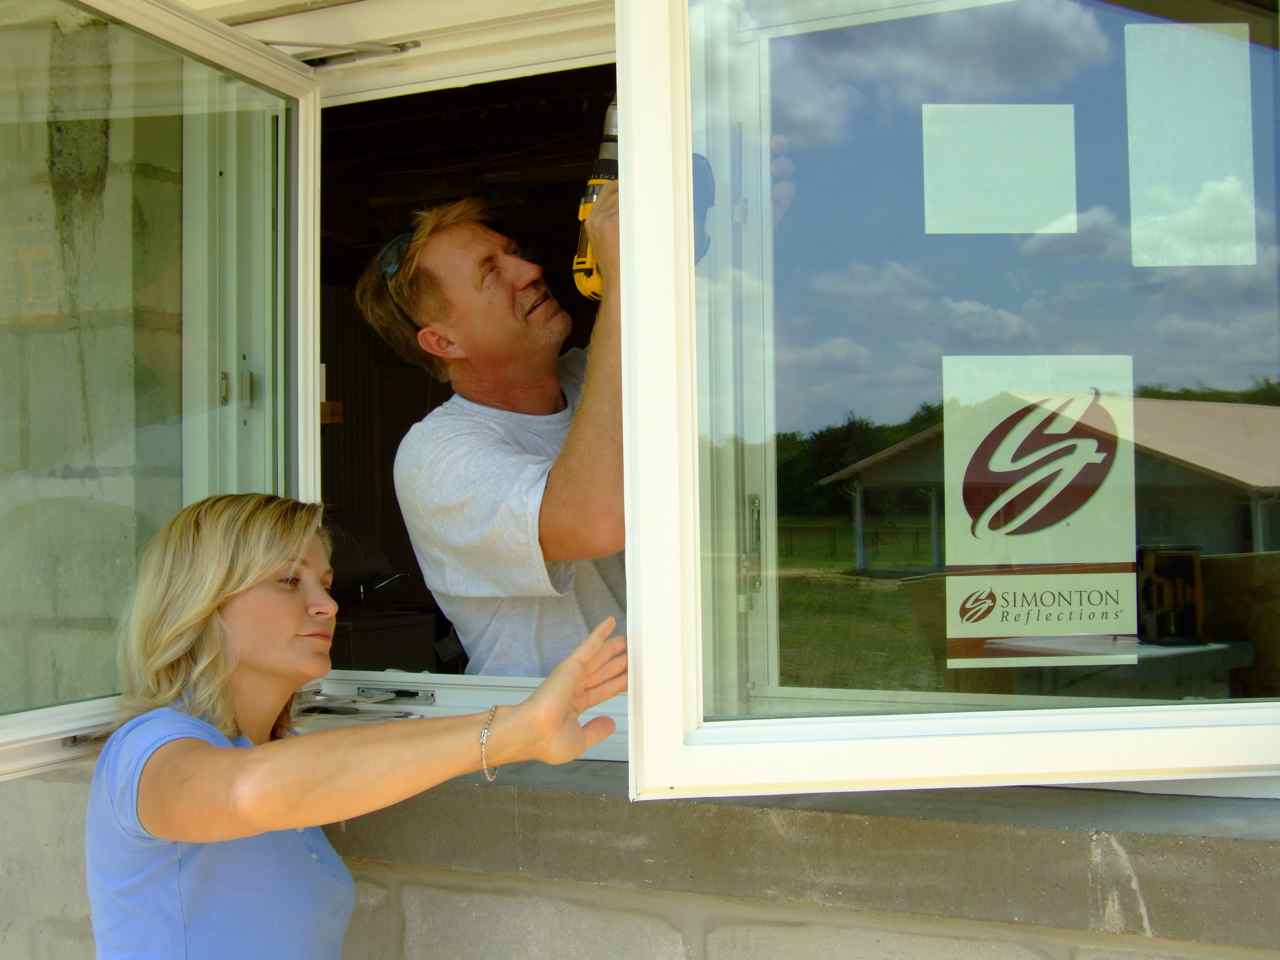 simonton replacement windows new construction media understanding condensation in the home